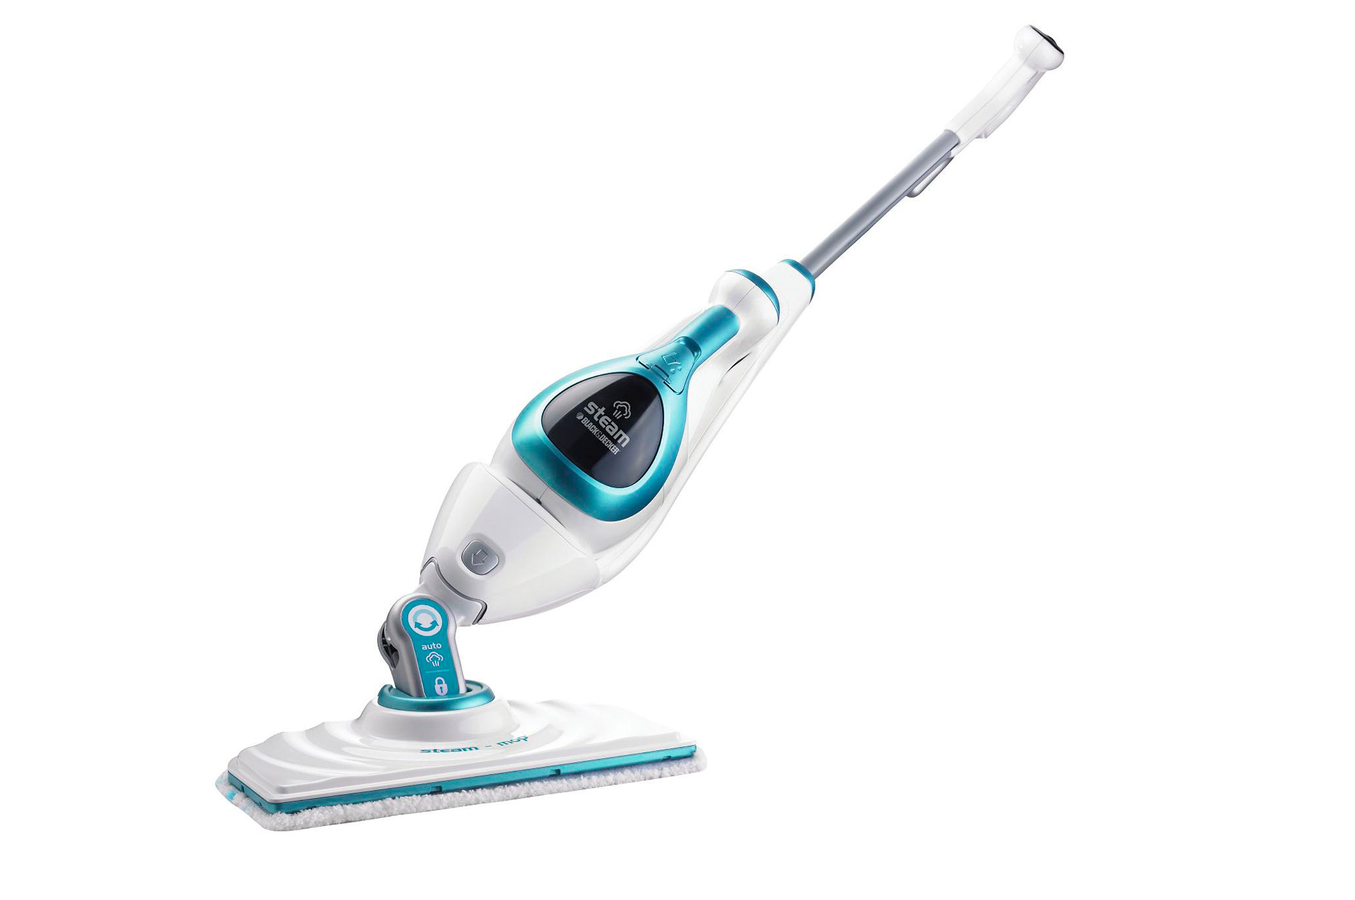 nettoyeur vapeur black decker fsmh1621 steam mop. Black Bedroom Furniture Sets. Home Design Ideas